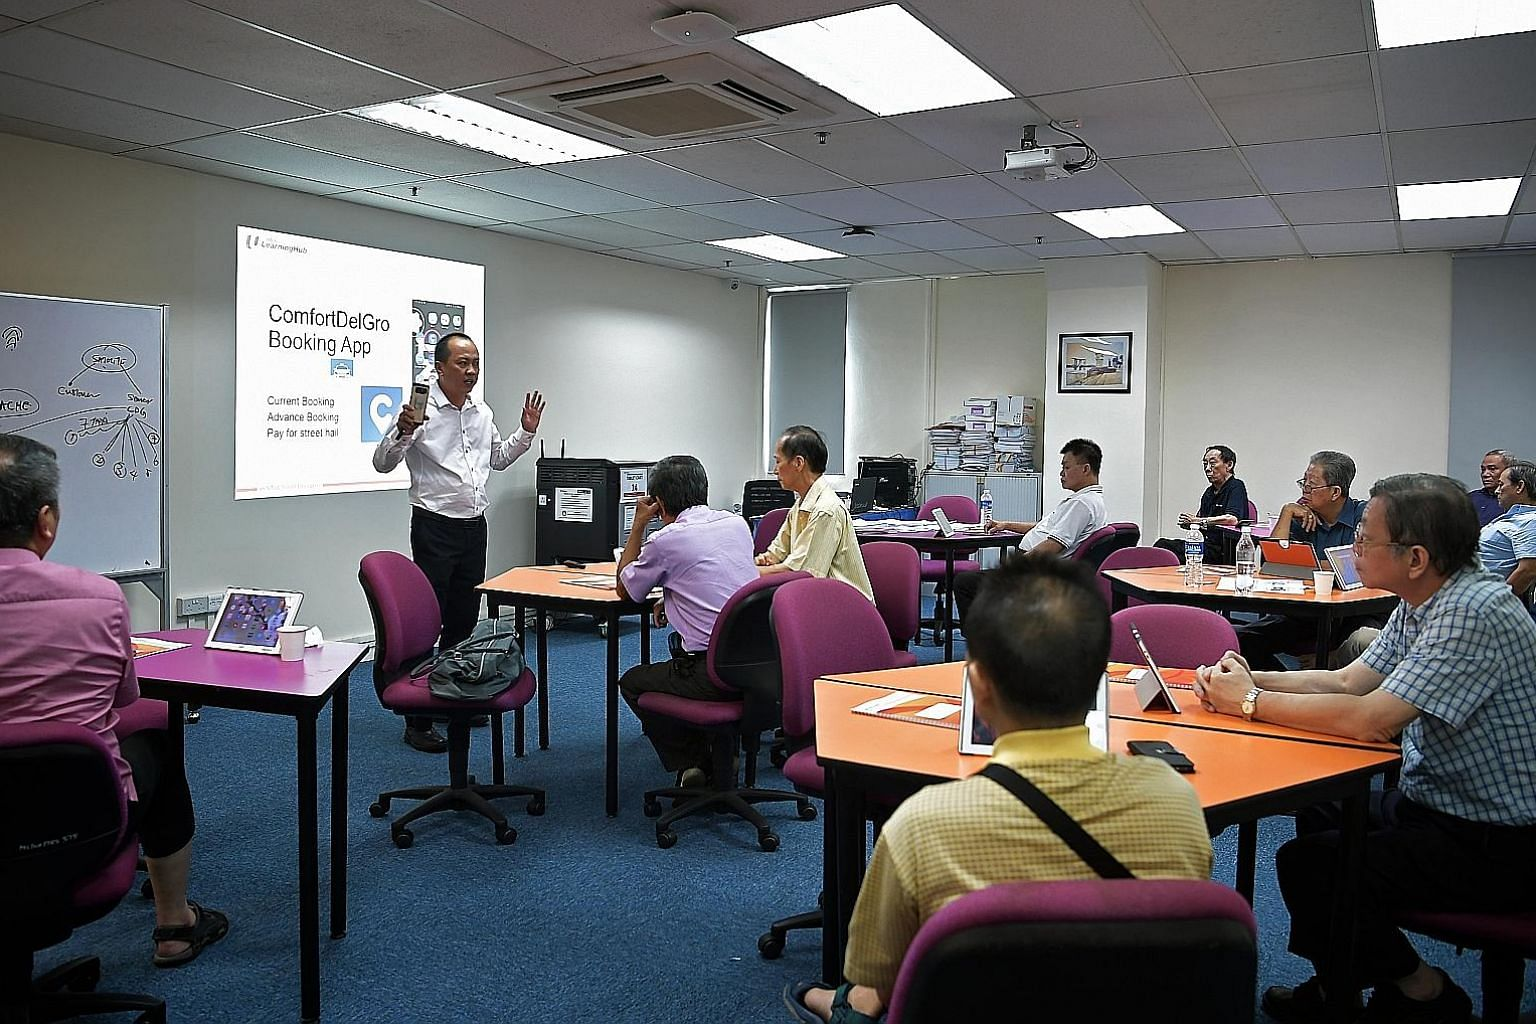 Cabbies attending a SkillsFuture for Digital Workplace class yesterday. The one-day programme is aimed at training 10,000 workers on how to better use technology in their jobs. Manpower Minister Josephine Teo, ComfortDelGro Taxi CEO Ang Wei Neng (thi